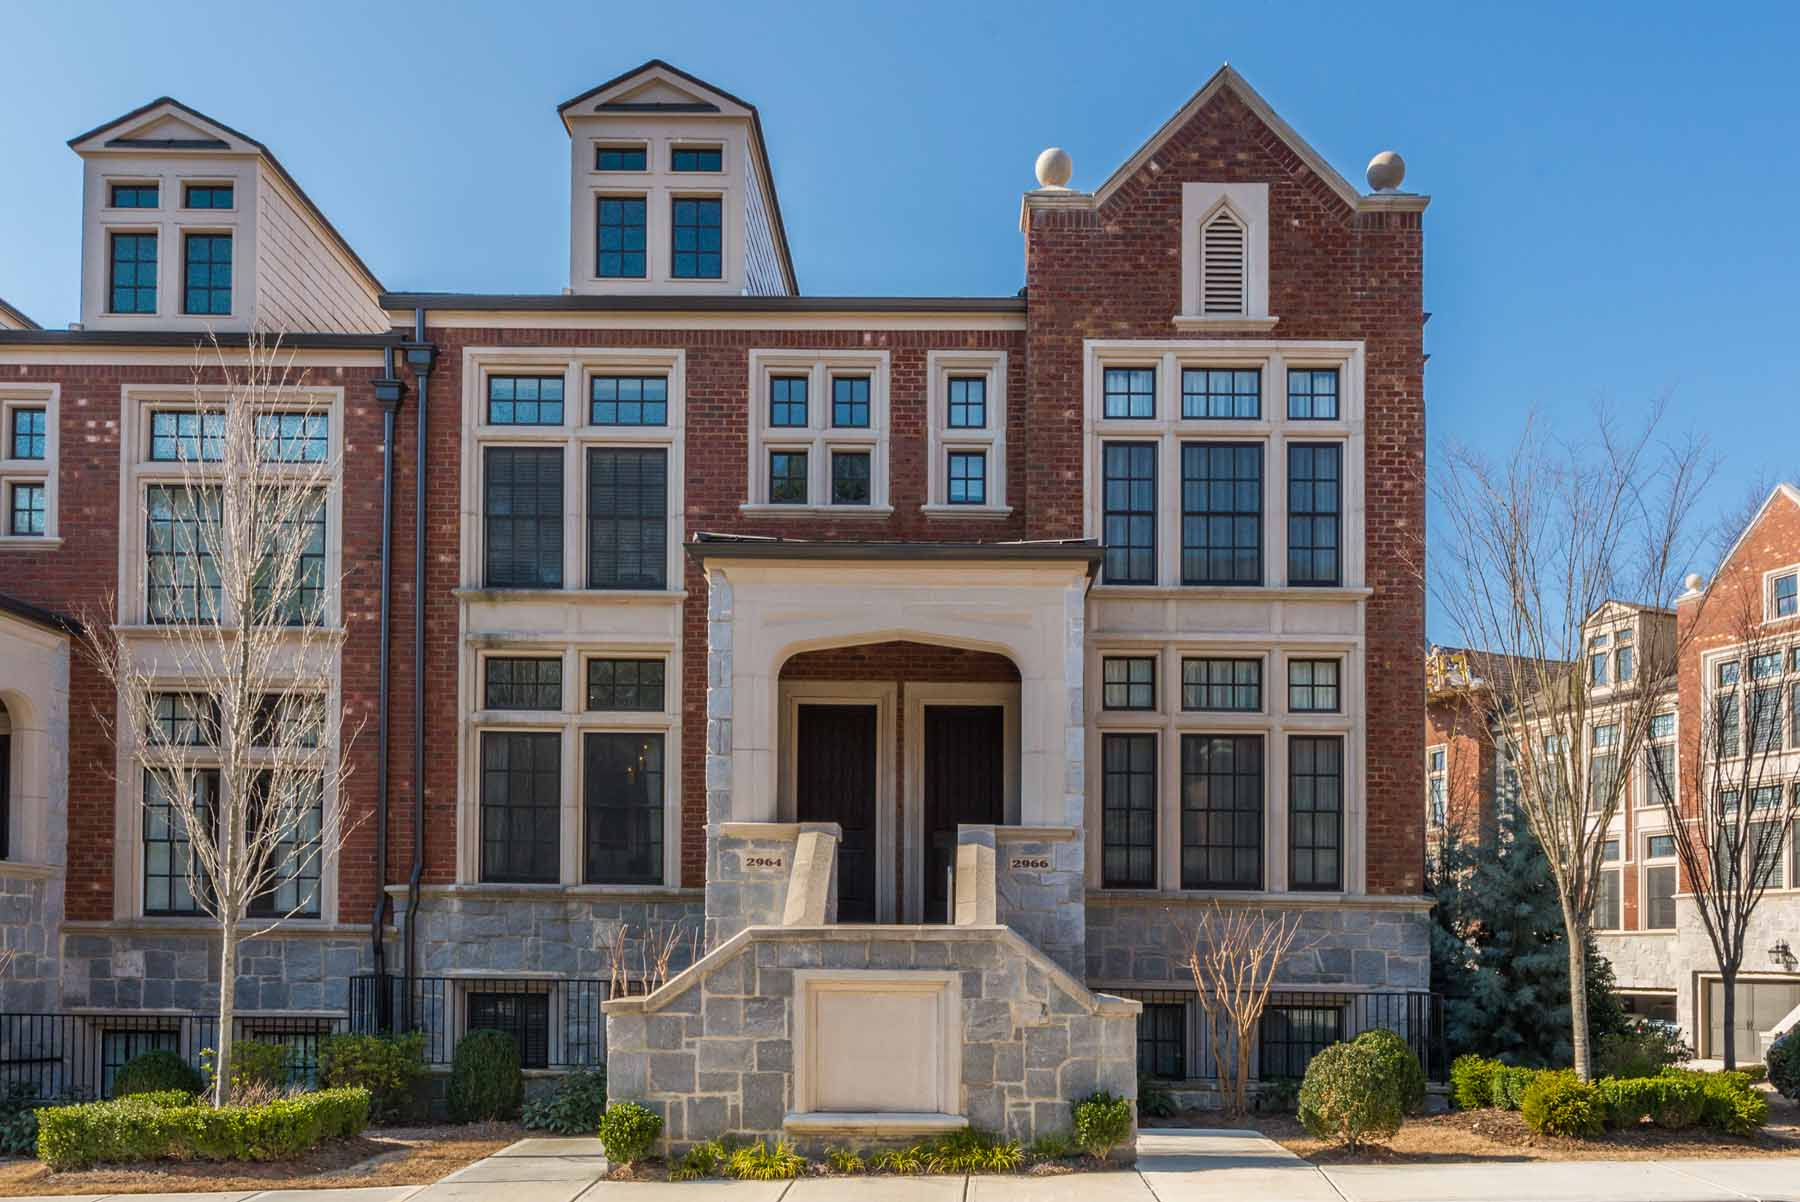 Townhouse for Sale at Great Location and Turn Key 2964 Savoy Way Atlanta, Georgia, 30319 United States